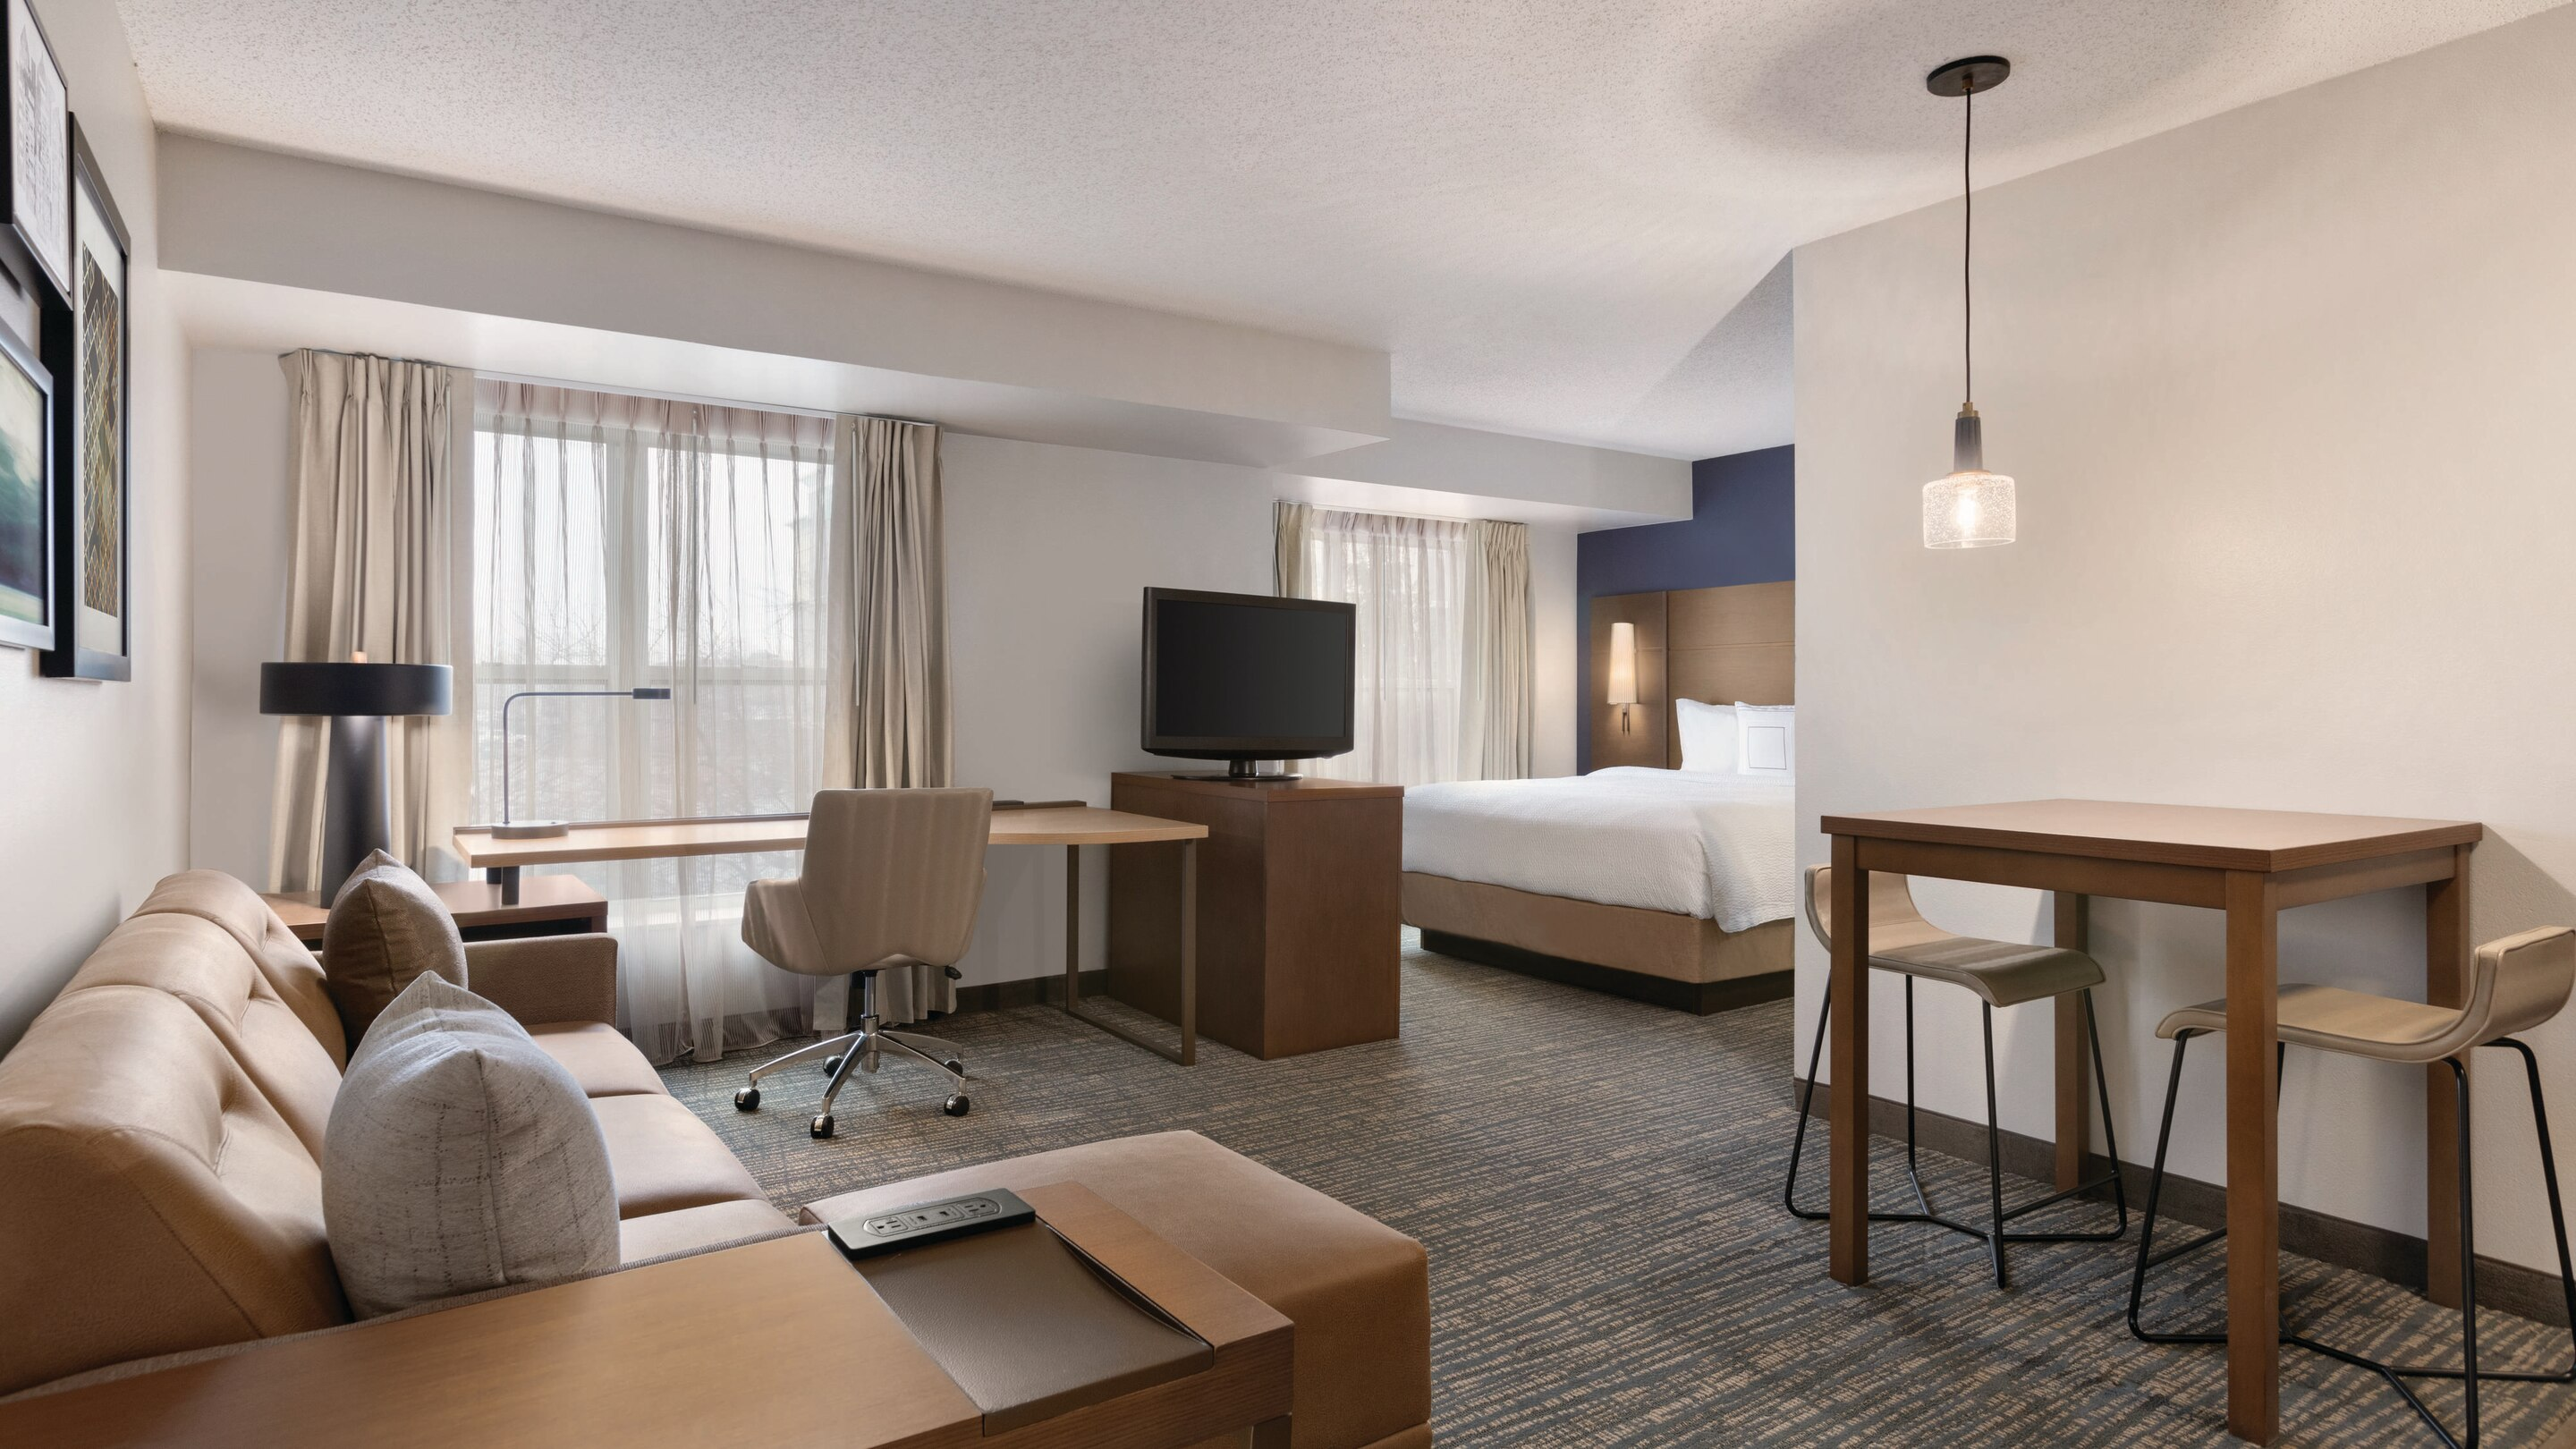 Residence Inn by Marriott Buffalo Room CAMS 2020 Preferred Hotel